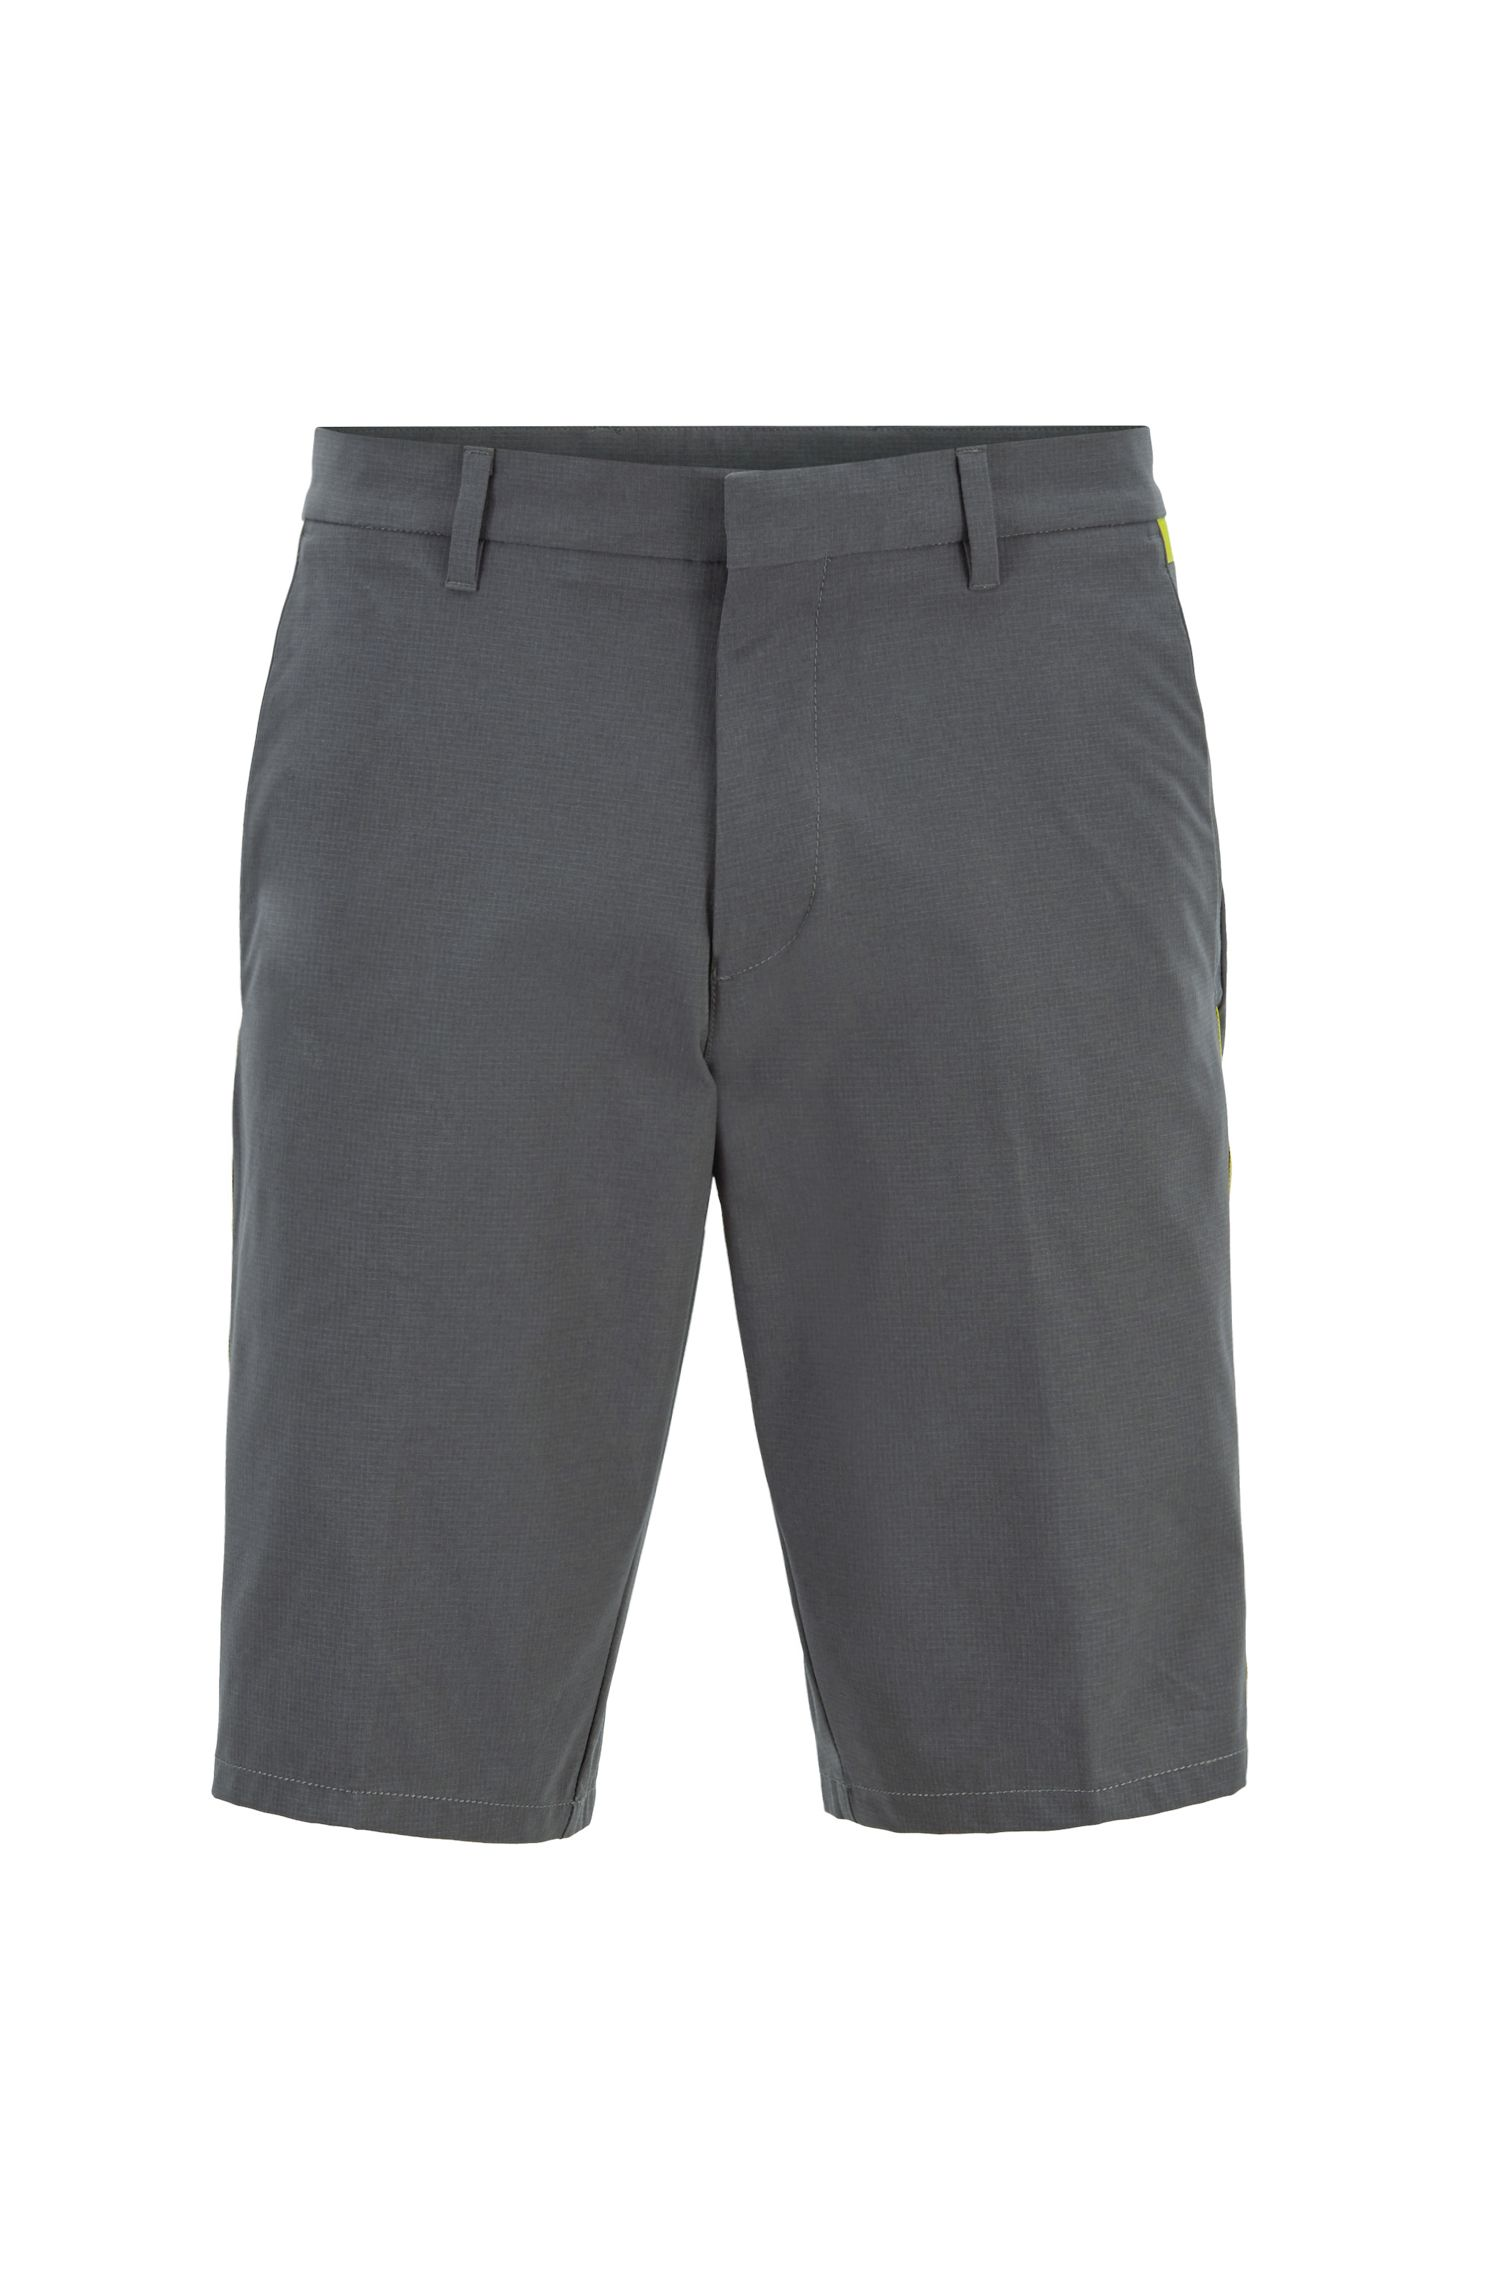 Extra-slim-fit water-repellent shorts in stretch ripstop fabric, Grey